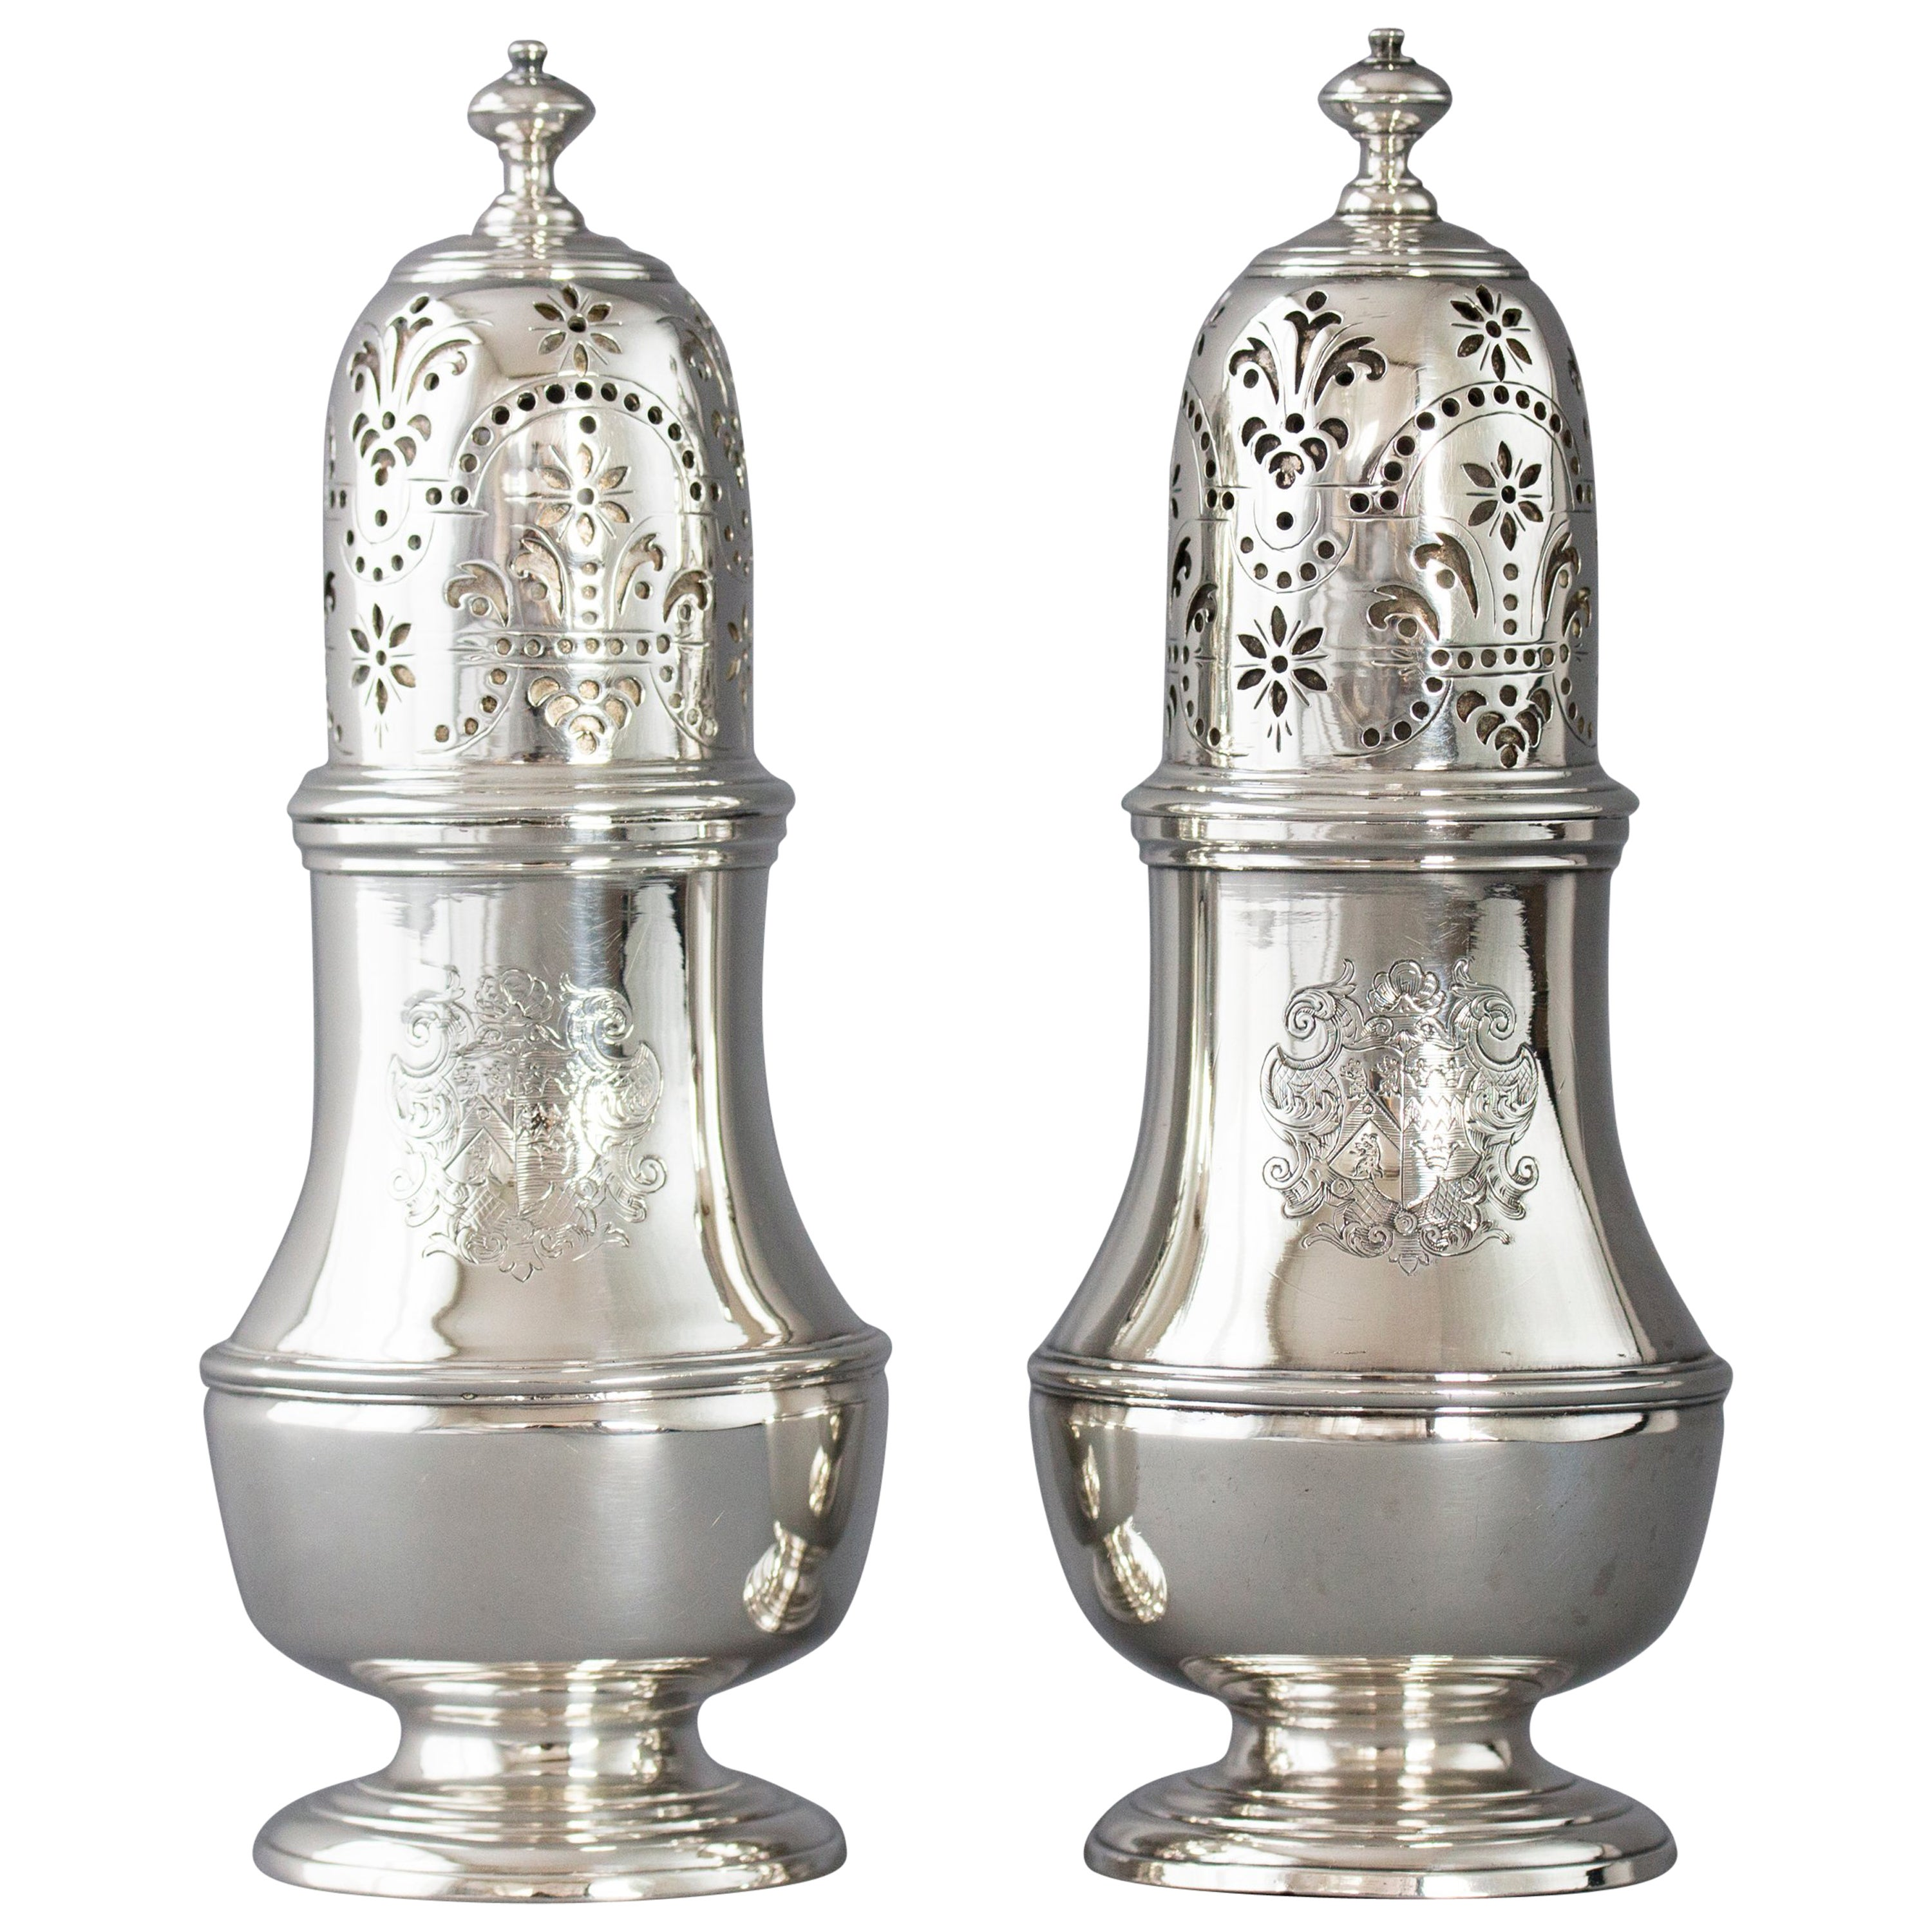 Pair of George I Silver Casters, London, 1723 by Thomas Bamford